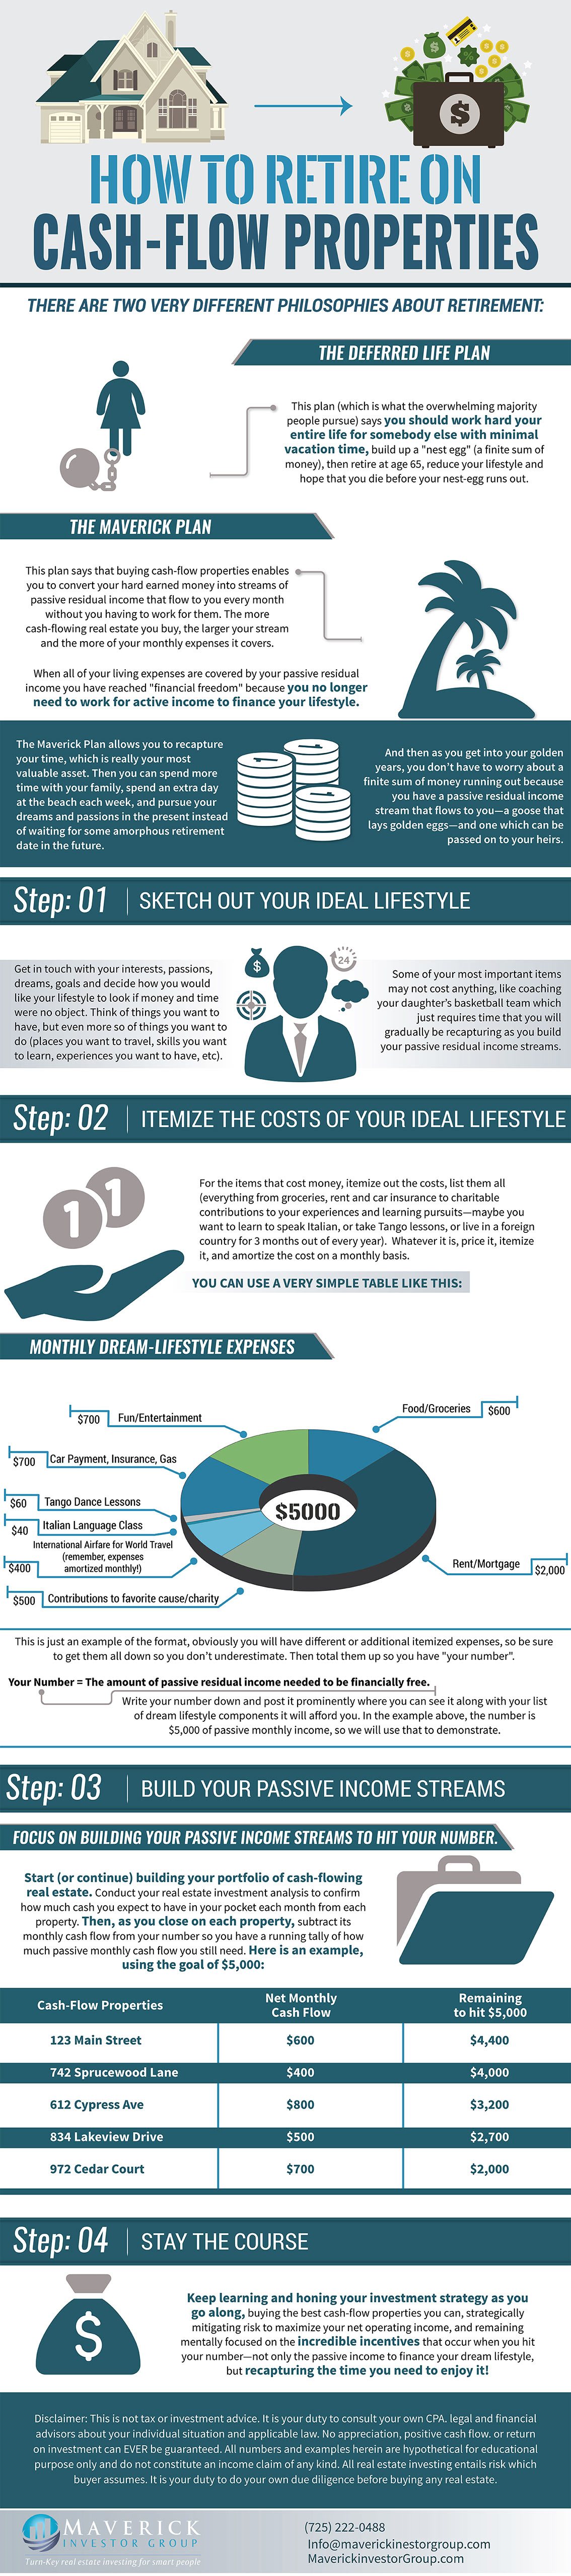 How To Retire On Cash-Flow Properties Infographic